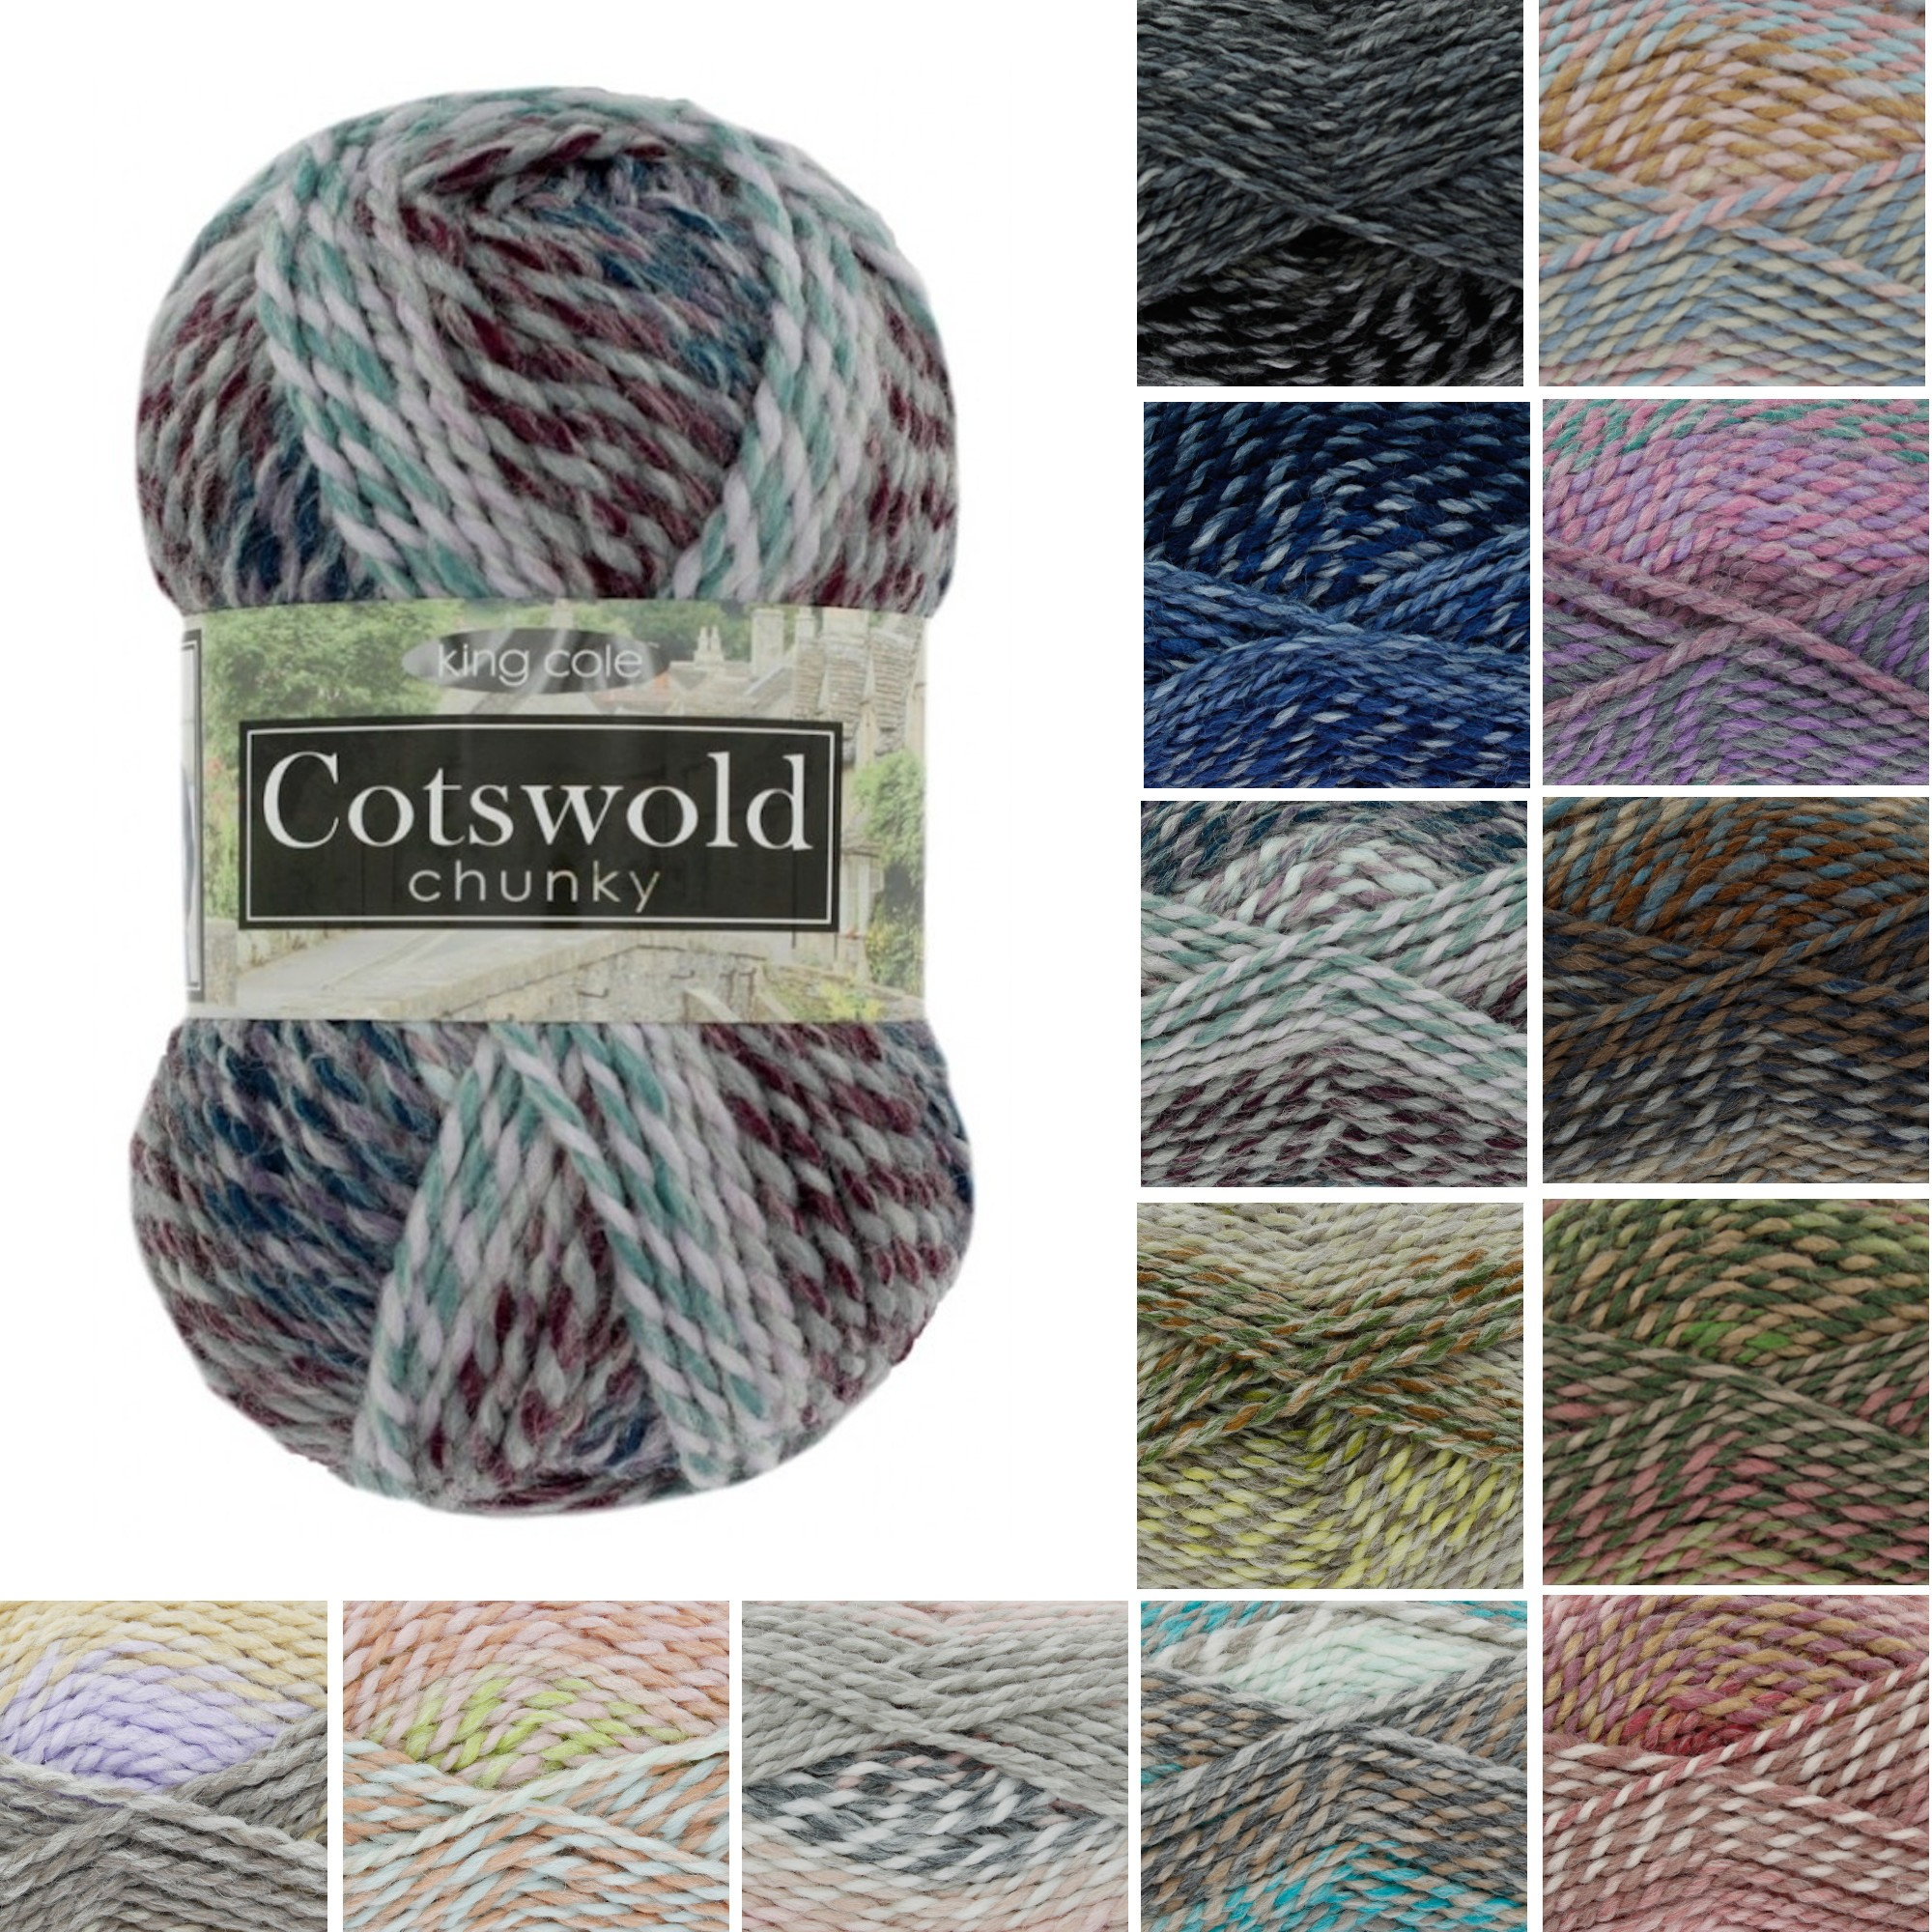 king cole cotswold chunky northleach